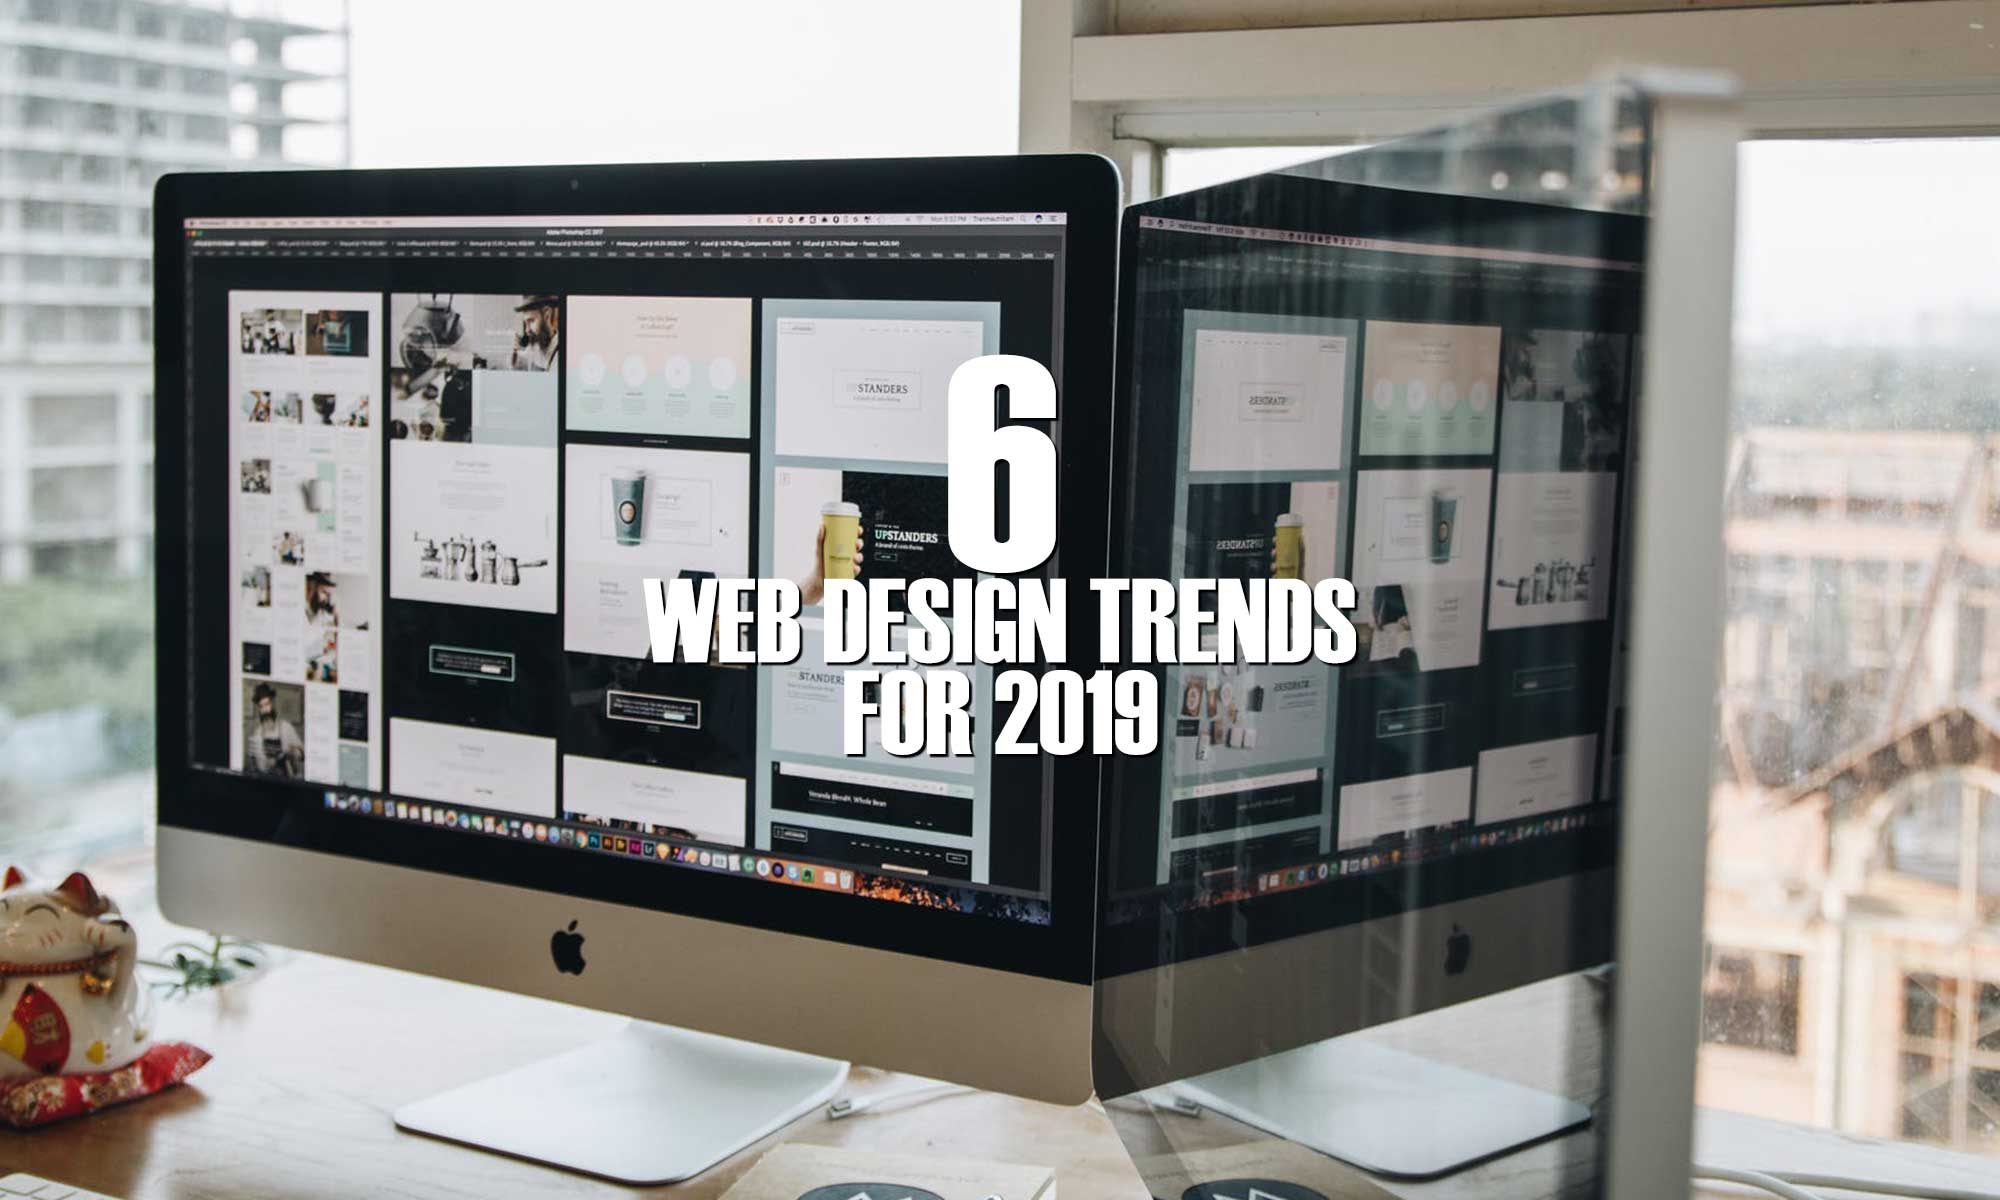 1marketingidea-website-design-trends-for-2019